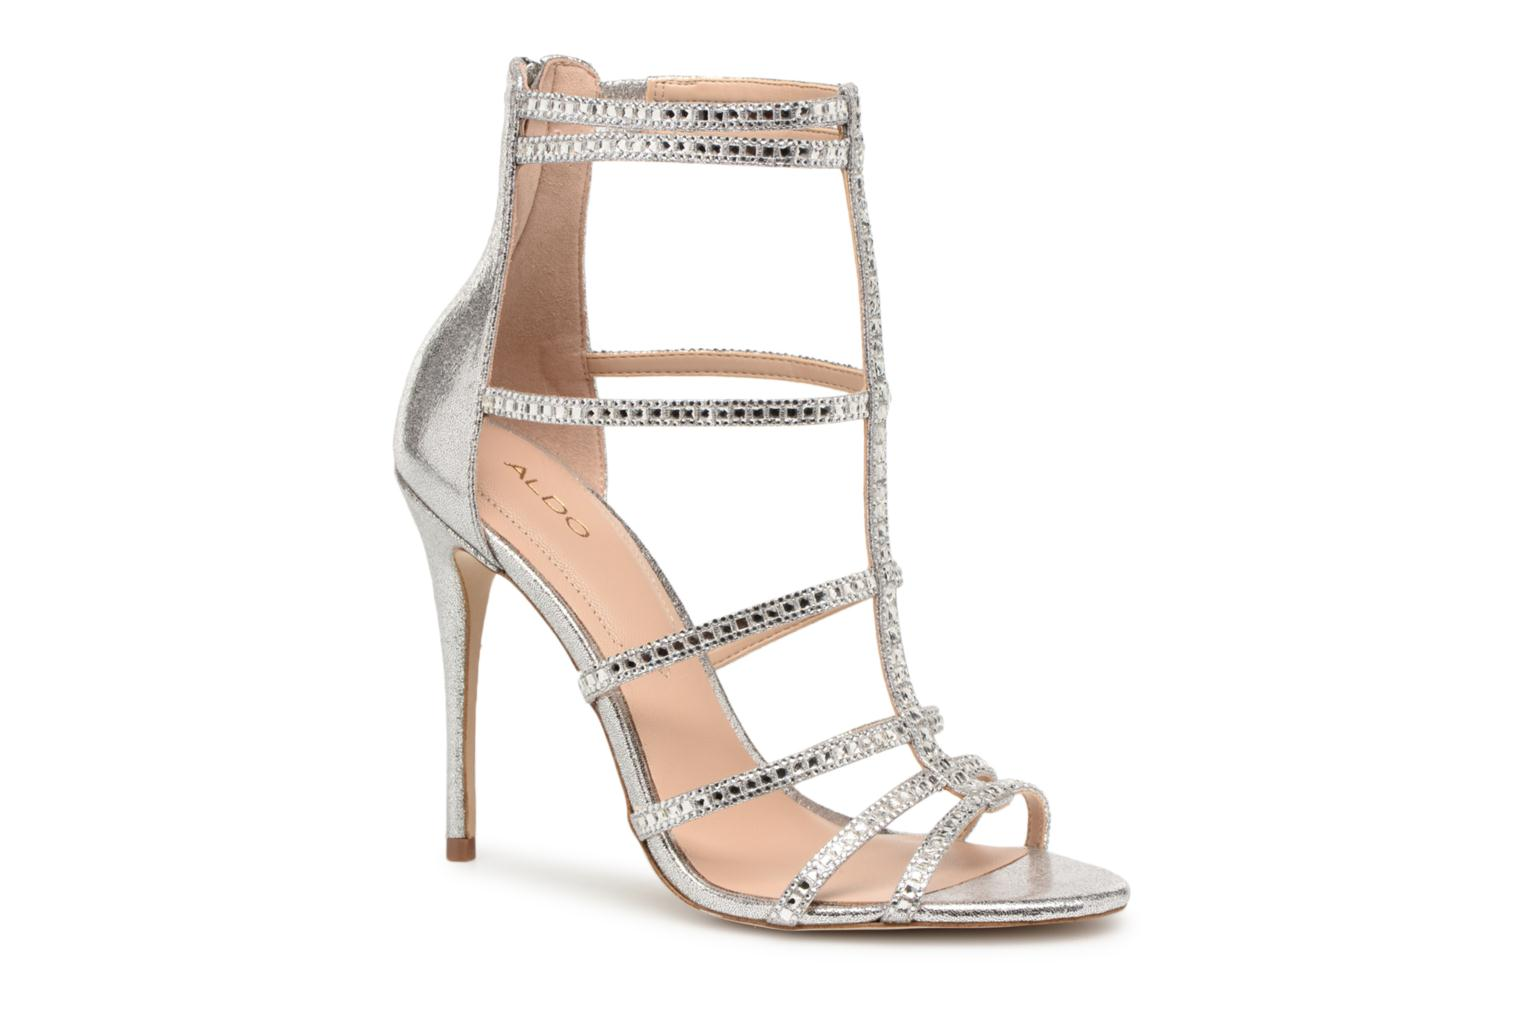 Marques Chaussure femme Aldo femme MALLY Silver 81